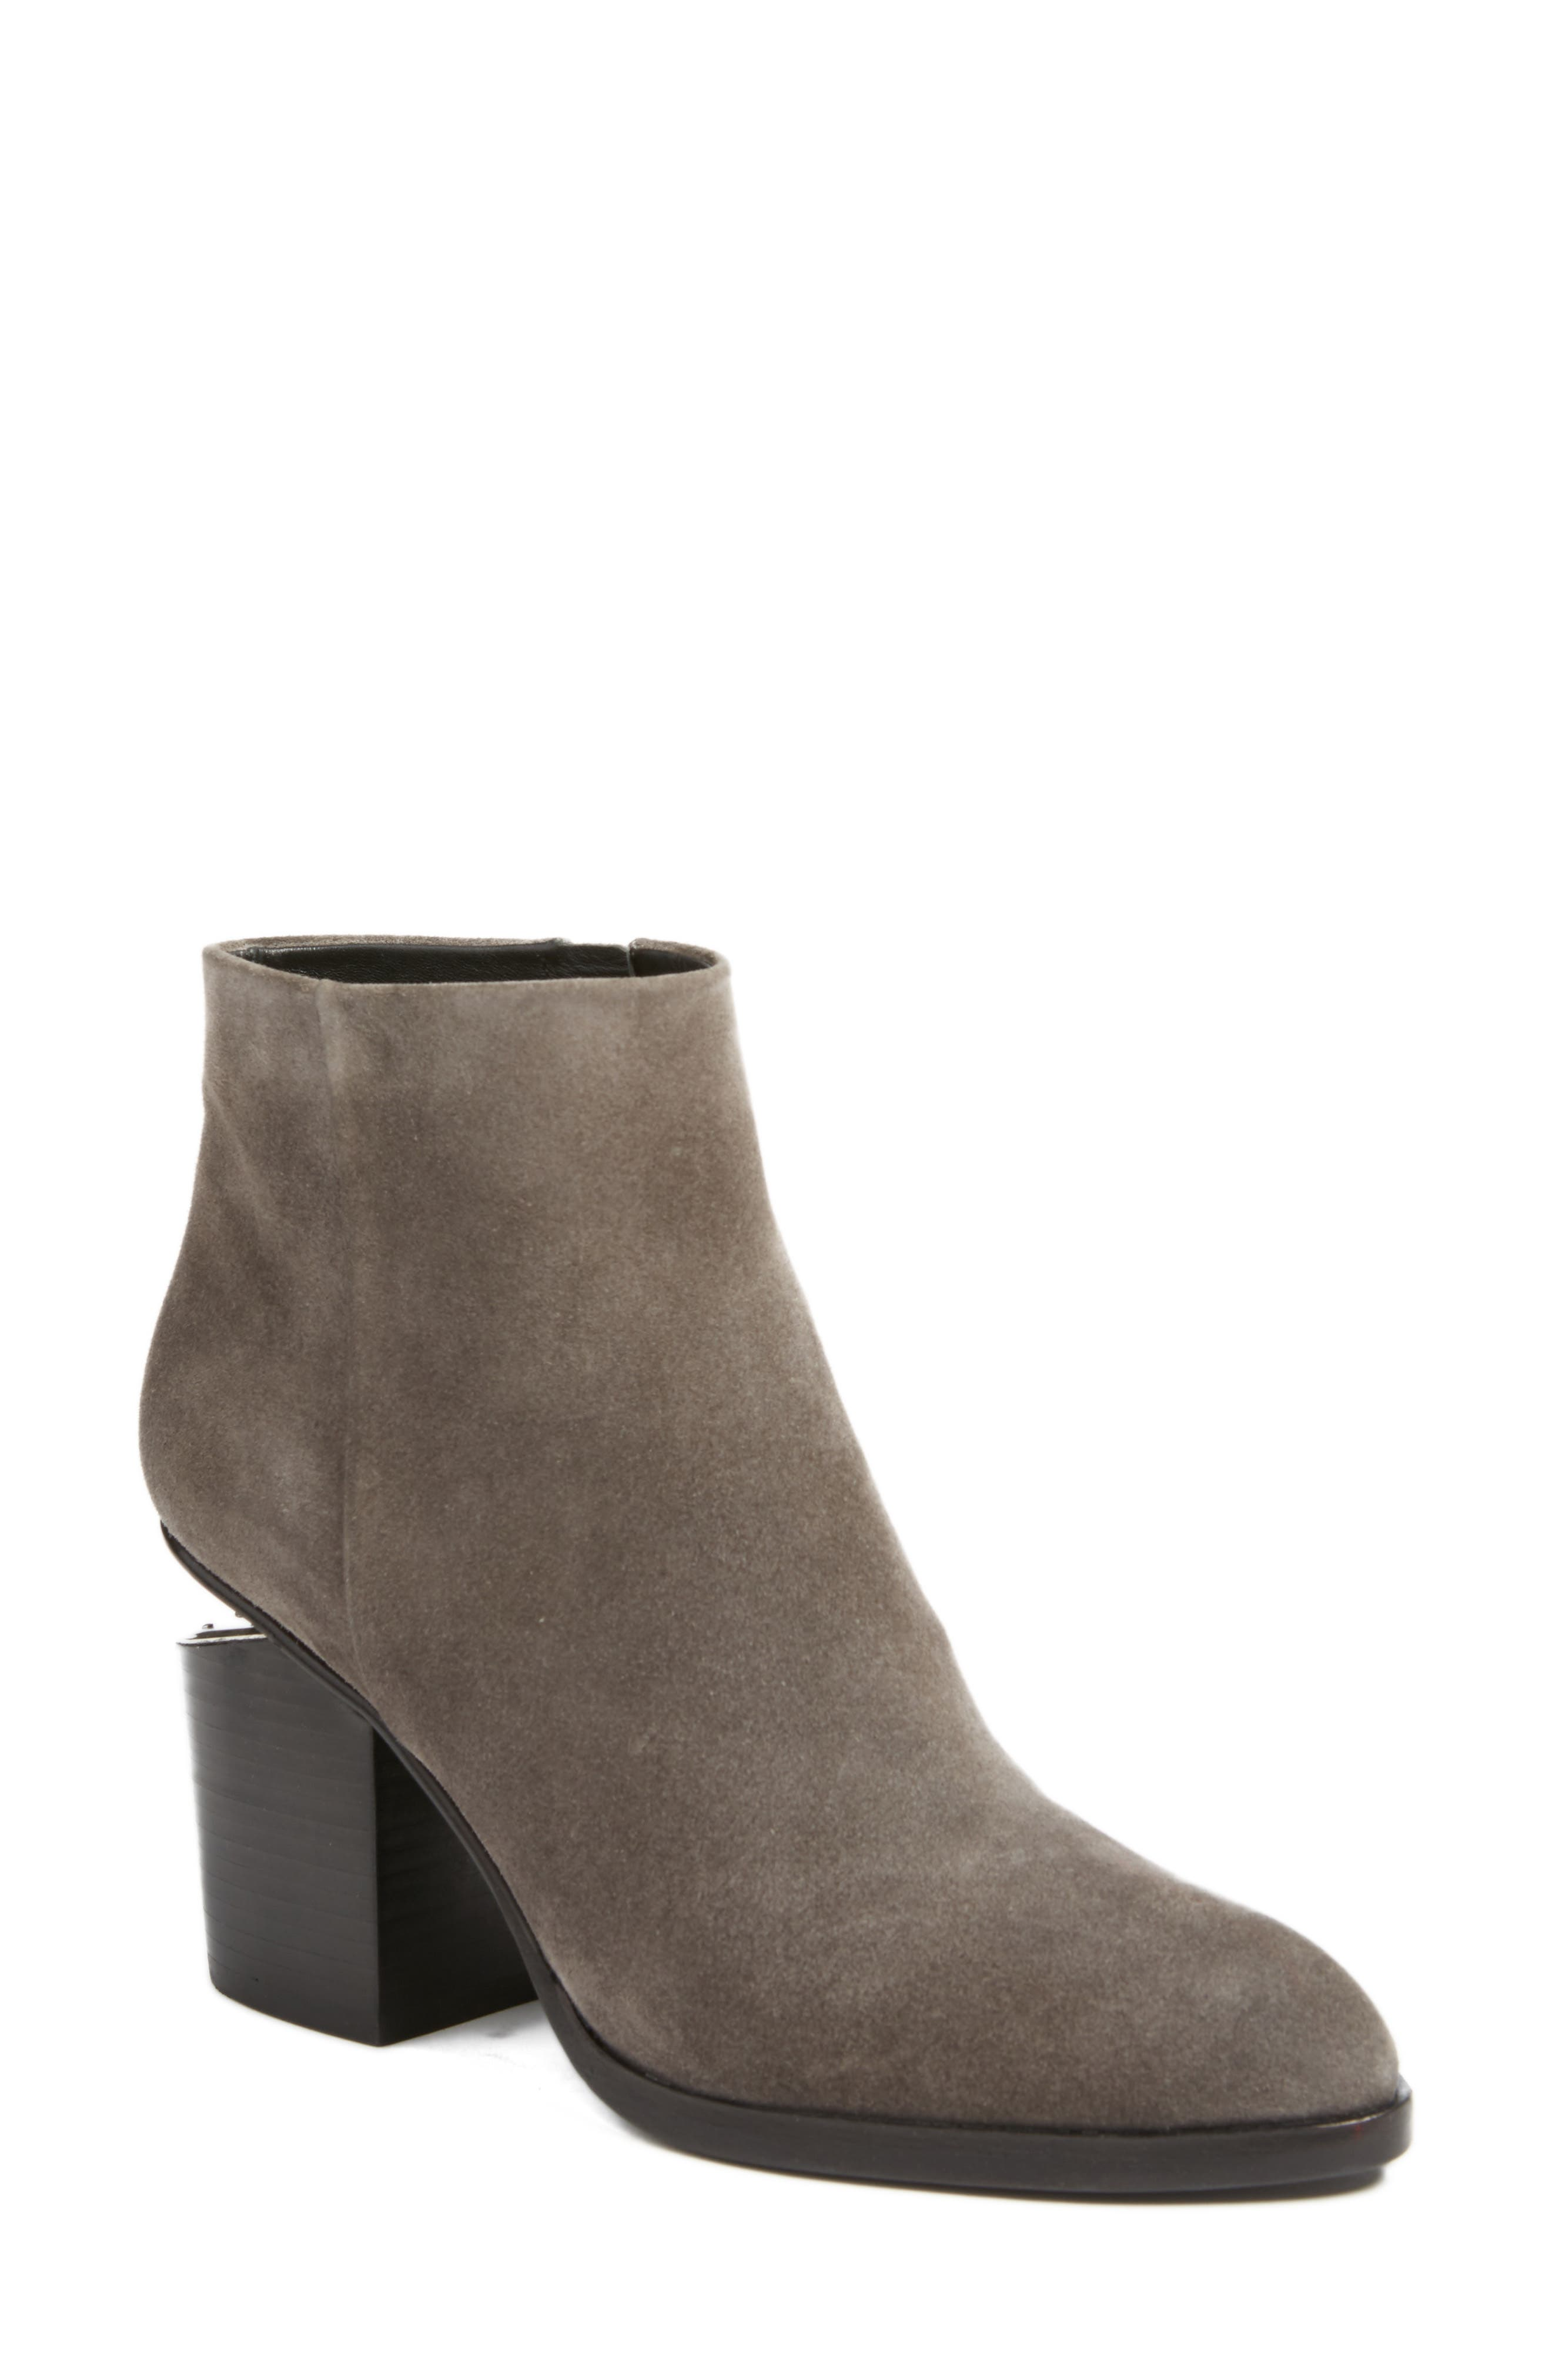 ALEXANDER WANG 'Gabi' Leather Bootie